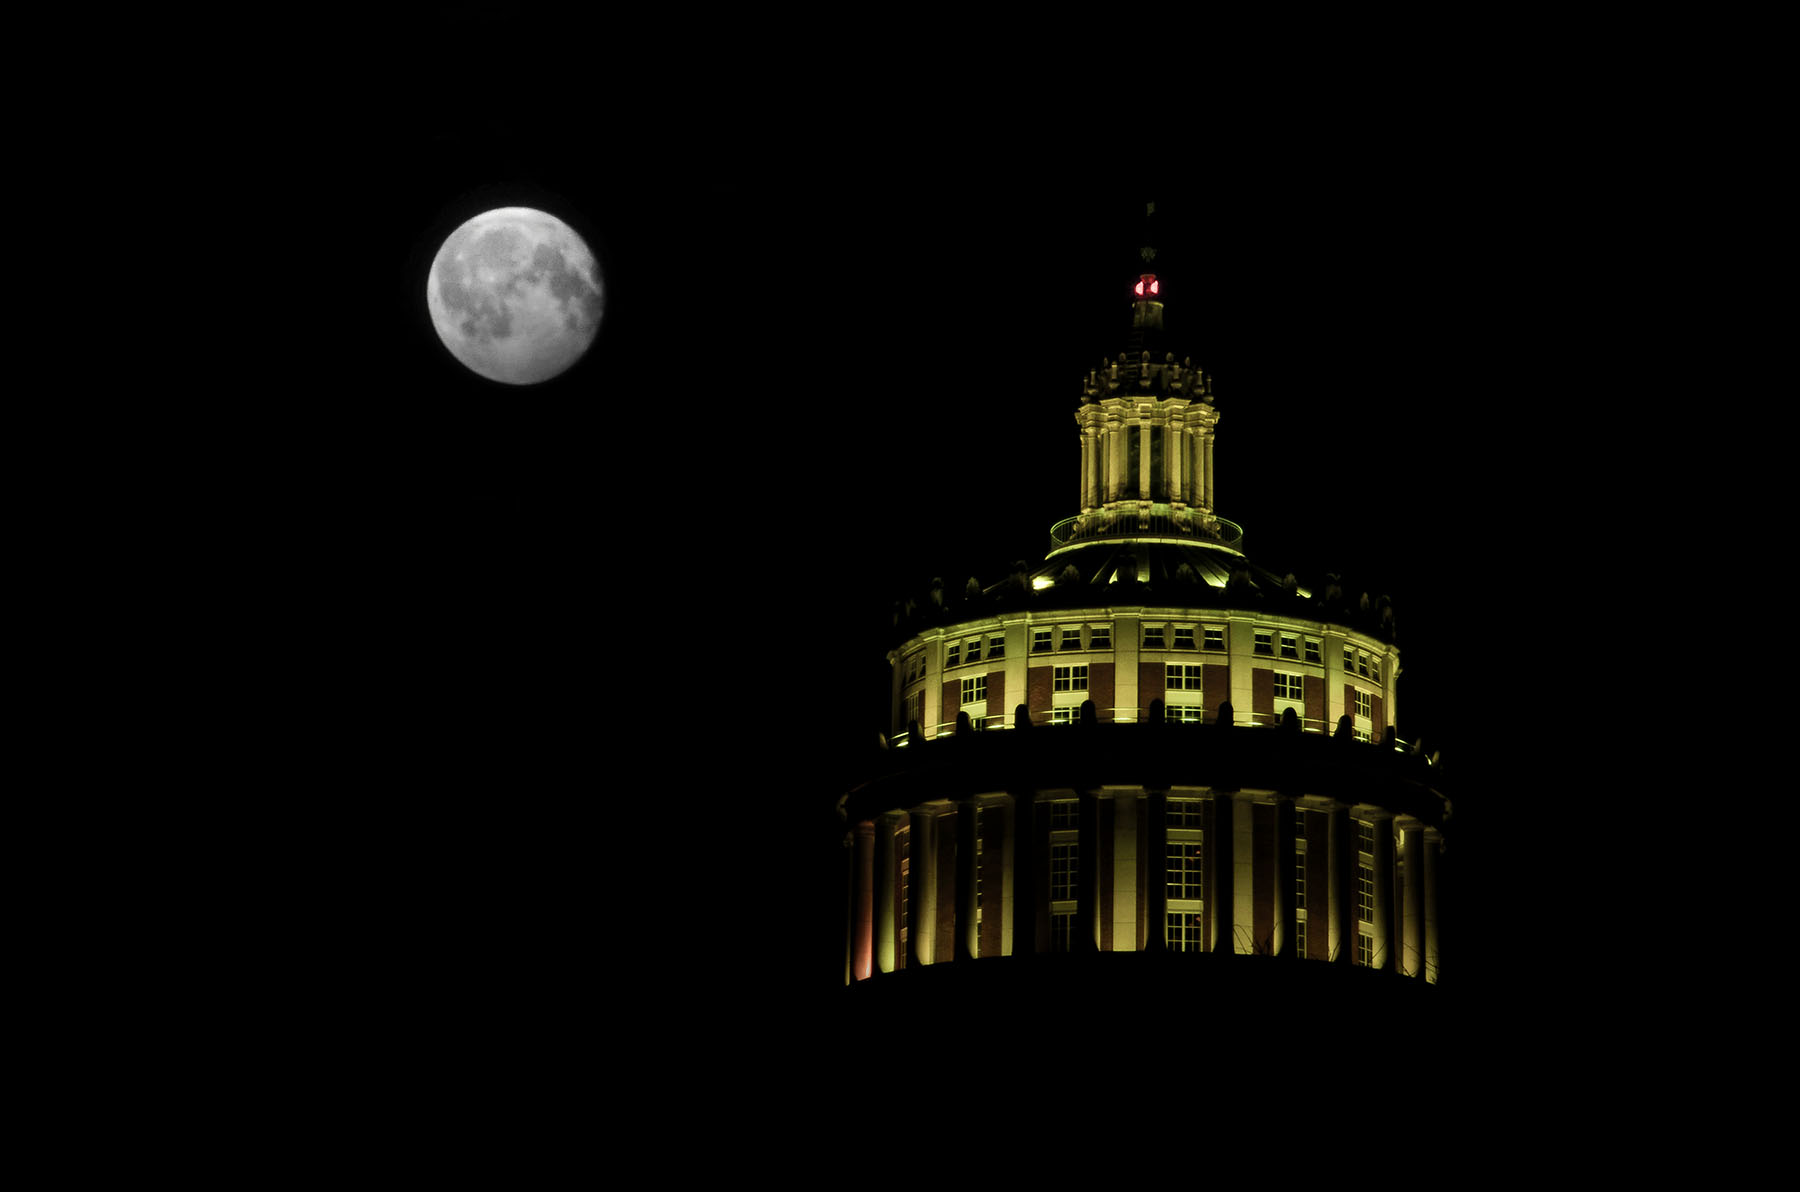 Rush Rhees Library tower under the full moon